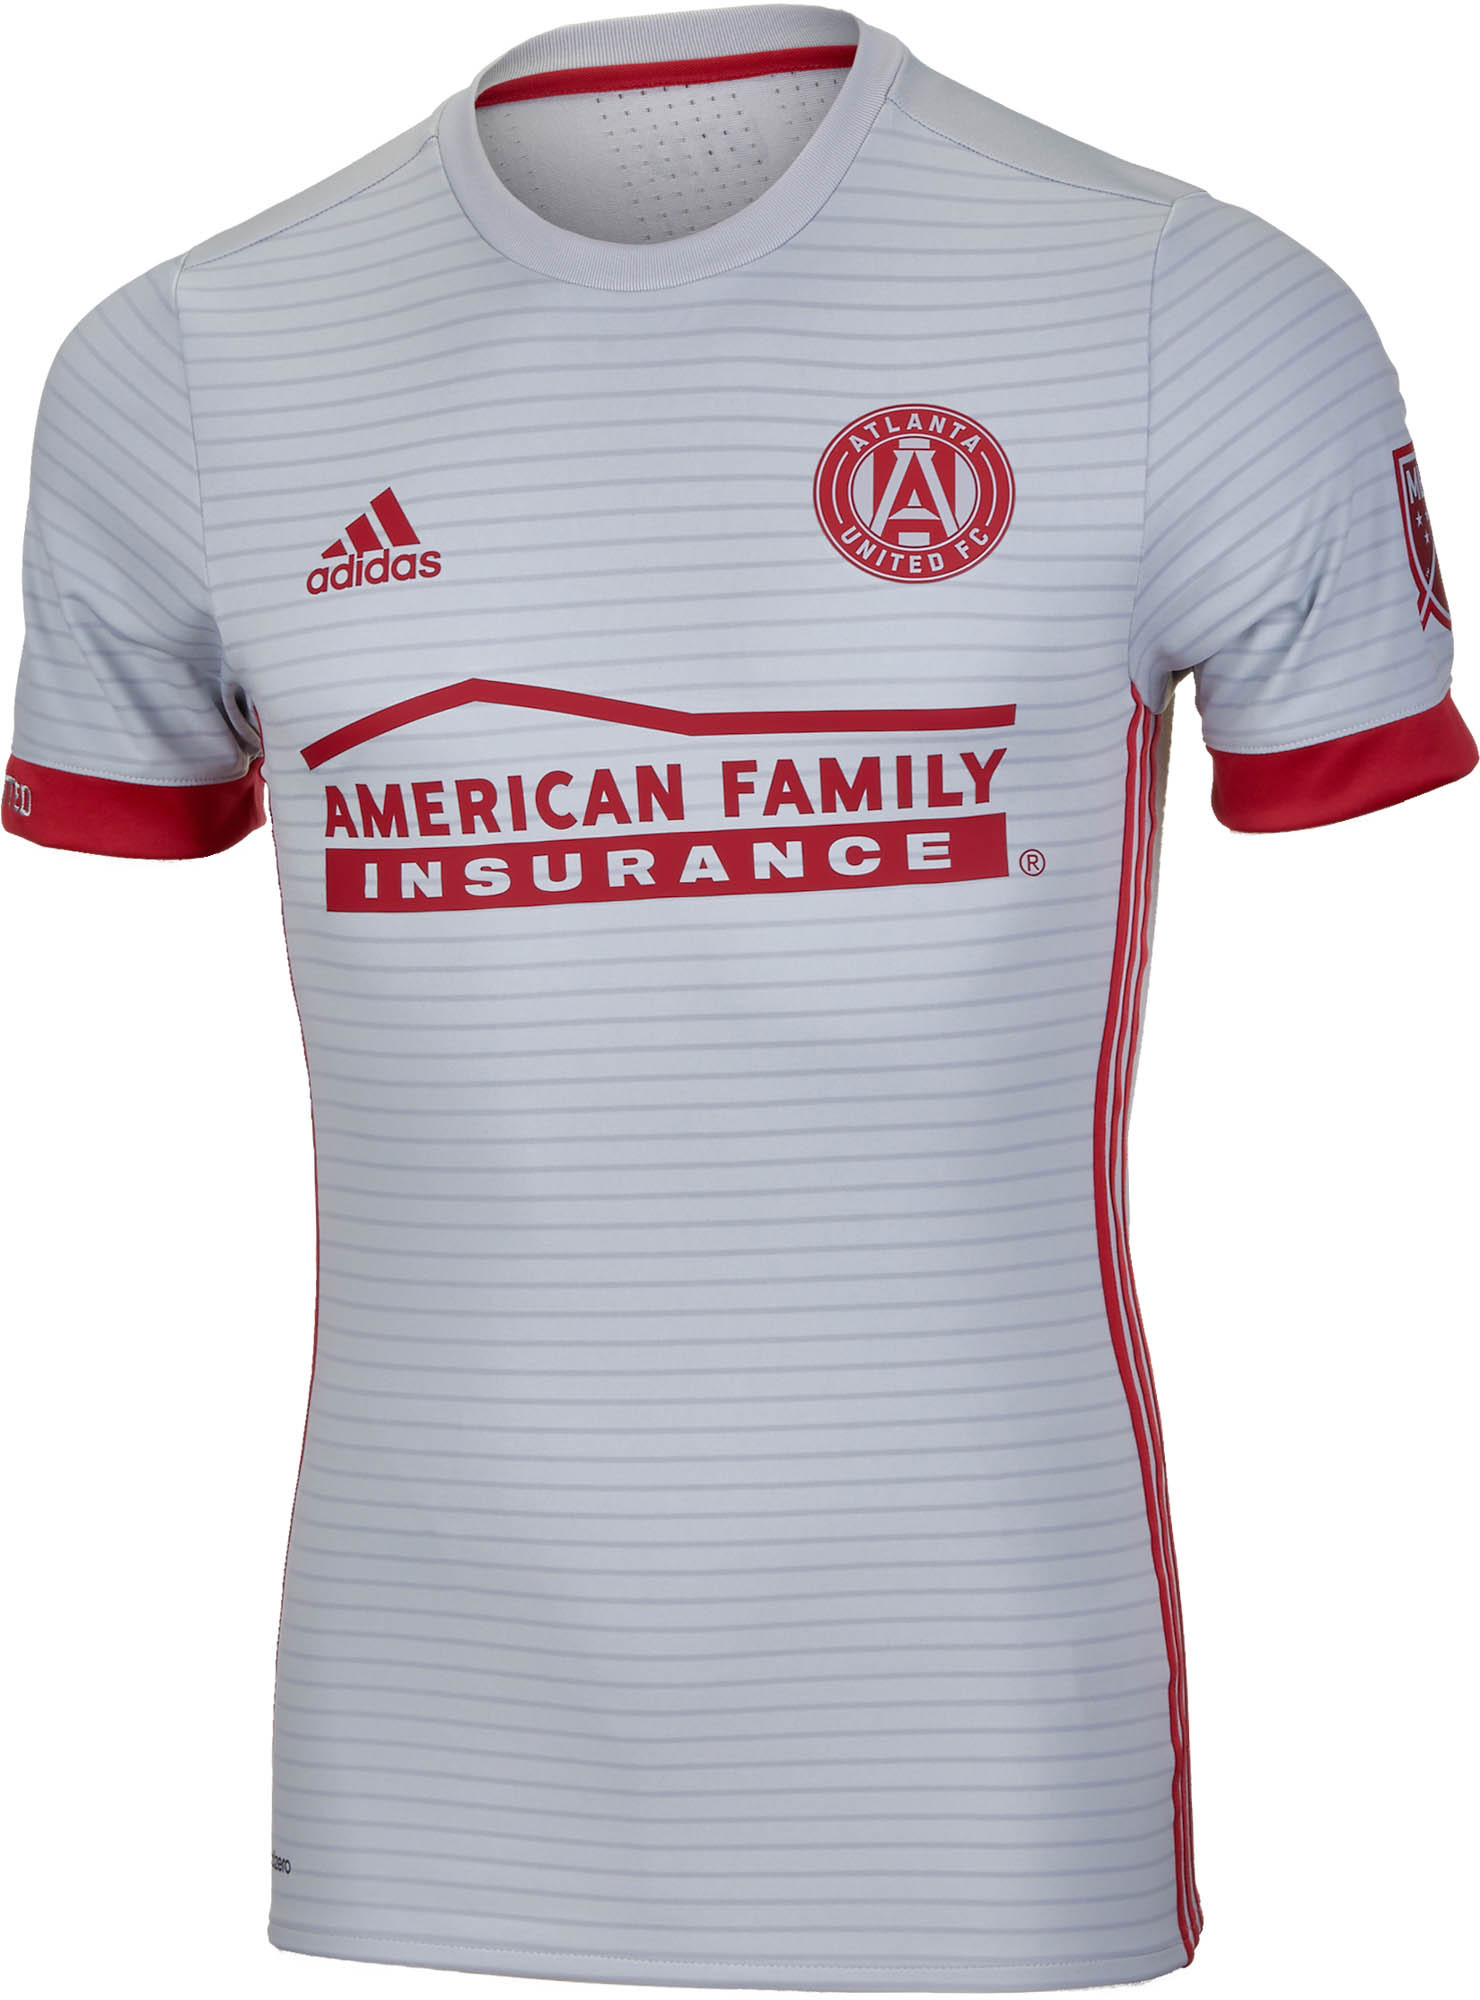 factory price 70b55 3c420 adidas Atlanta United Authentic Away Jersey 2017-18